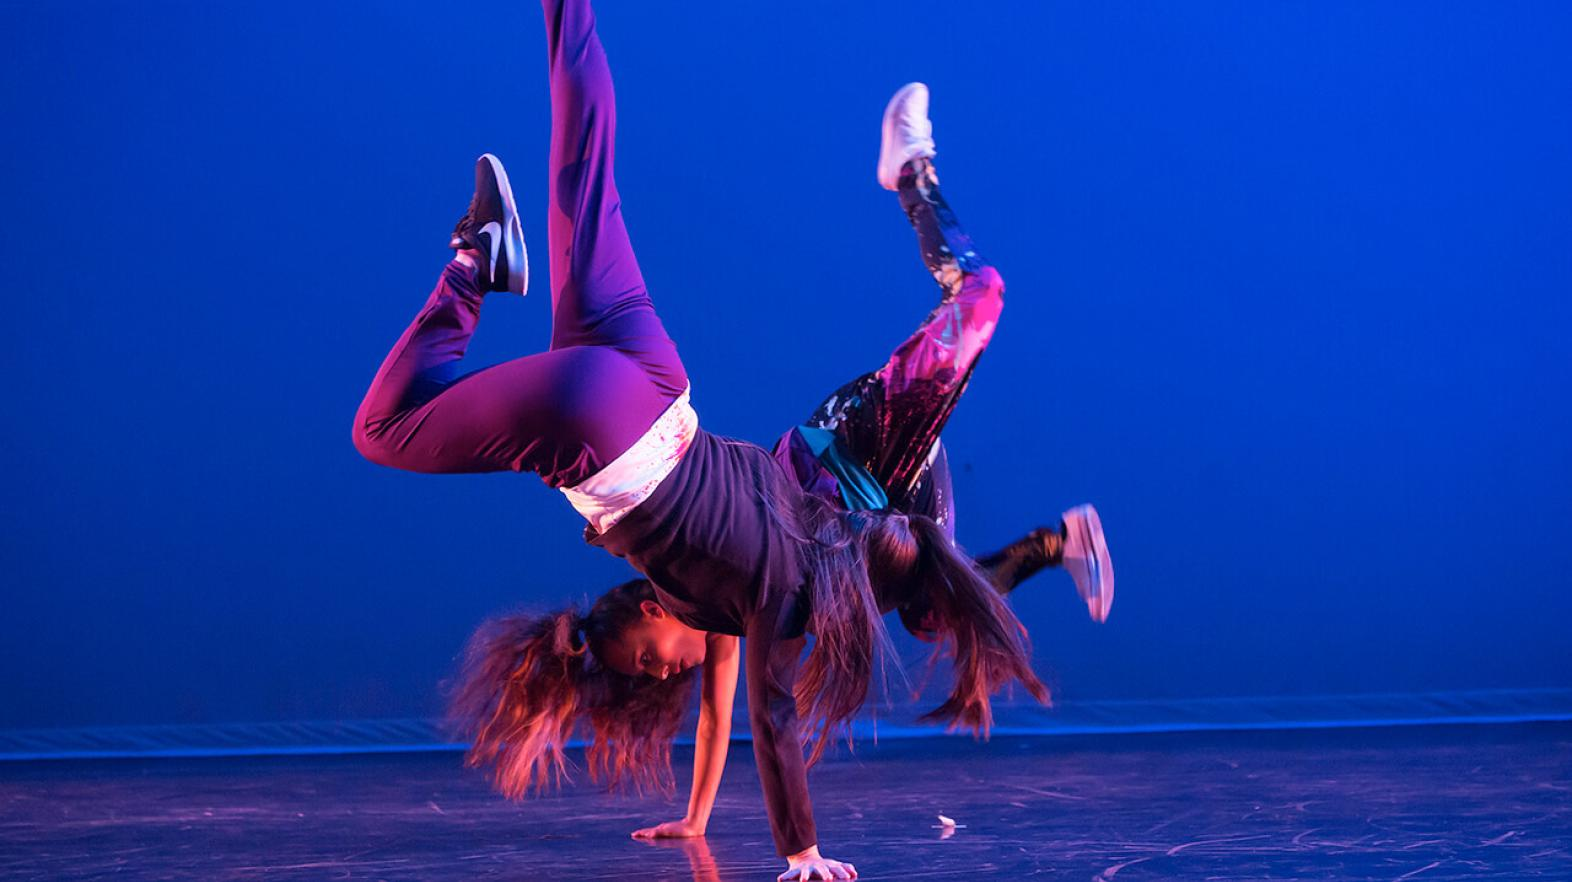 Two dancers perform a hip hop routine